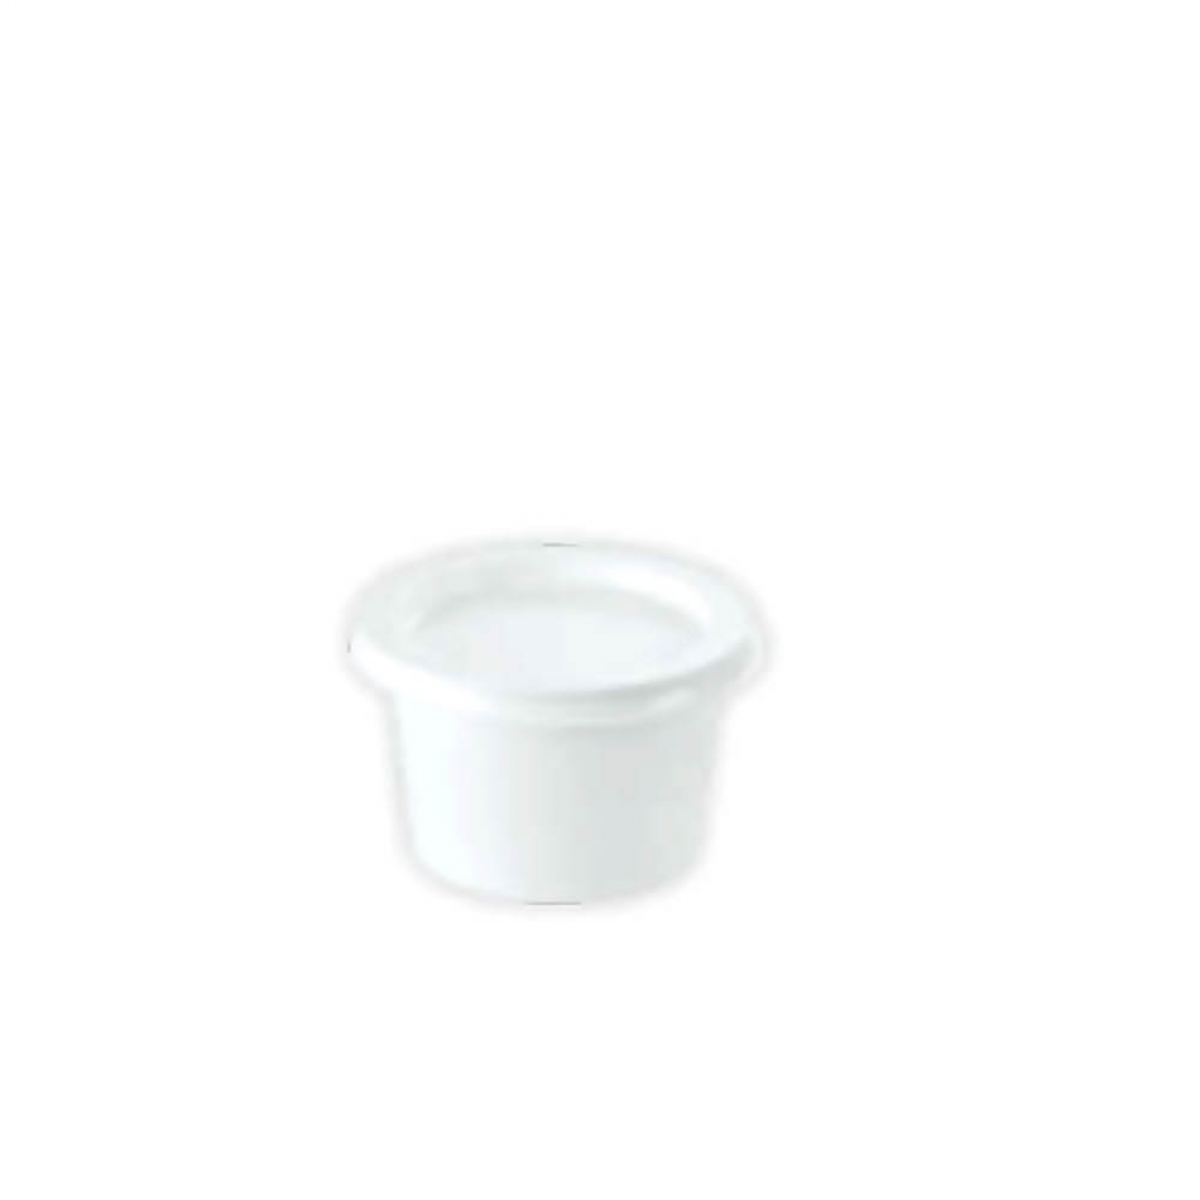 garlic container with lid 43*33